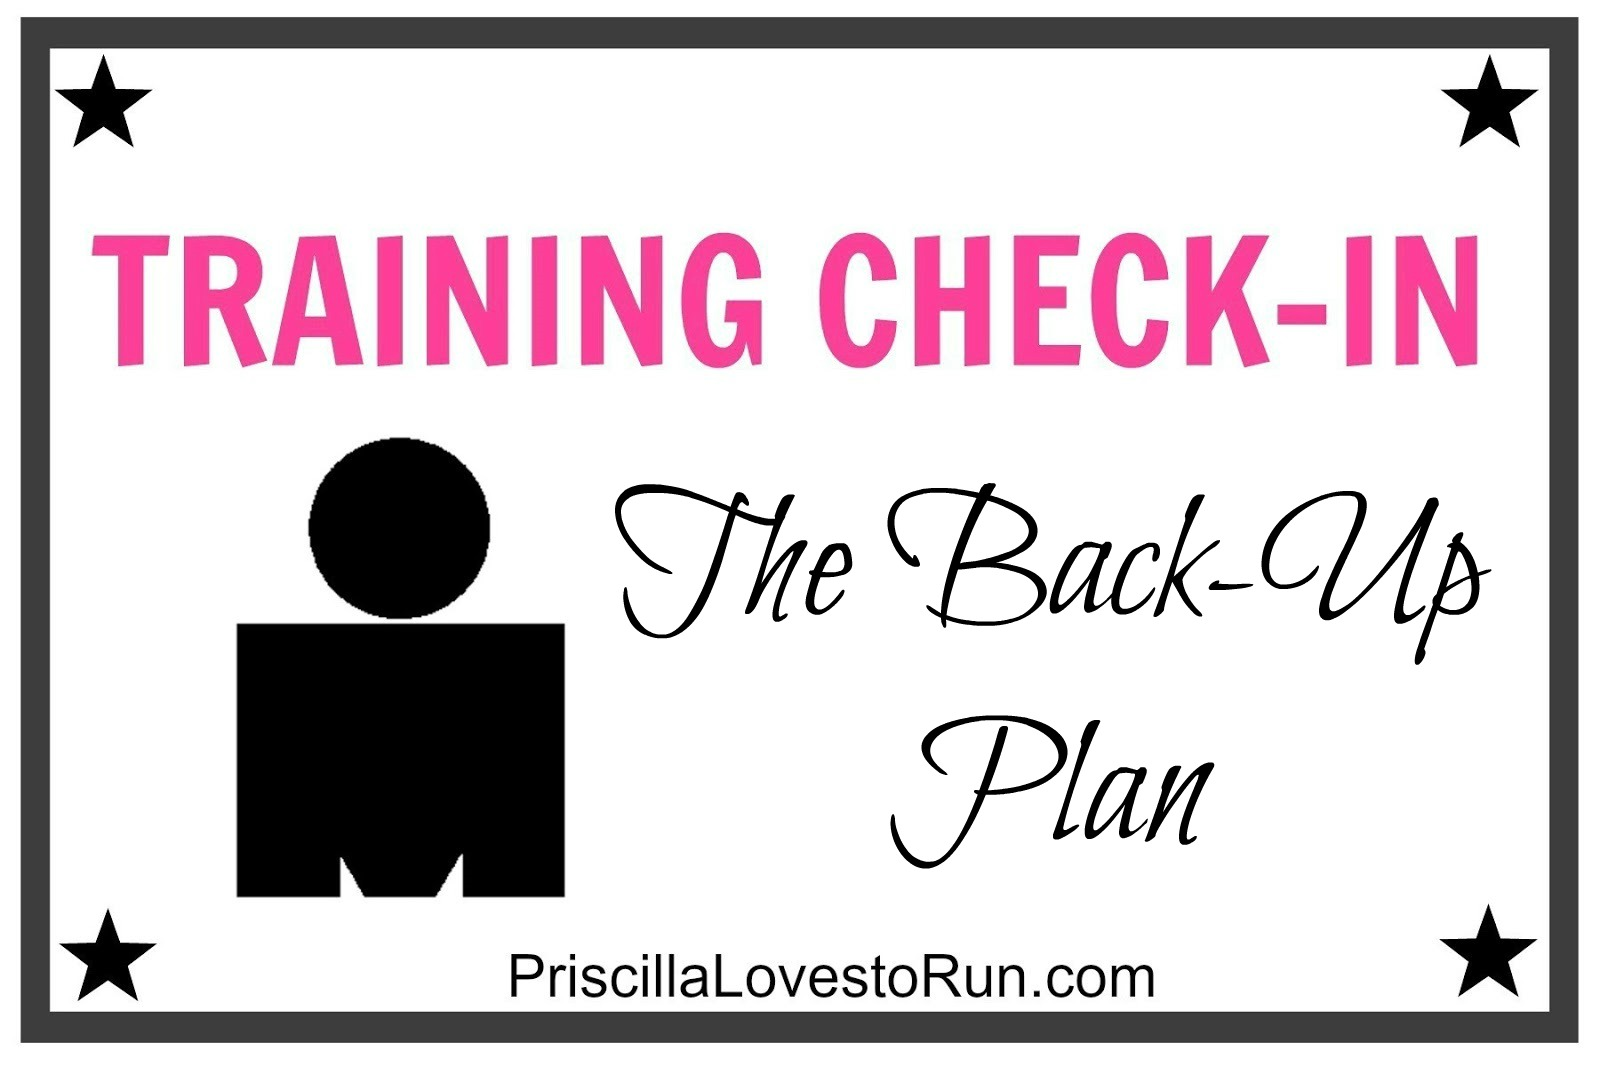 Training Check-in: Ironman – The Back Up Plan